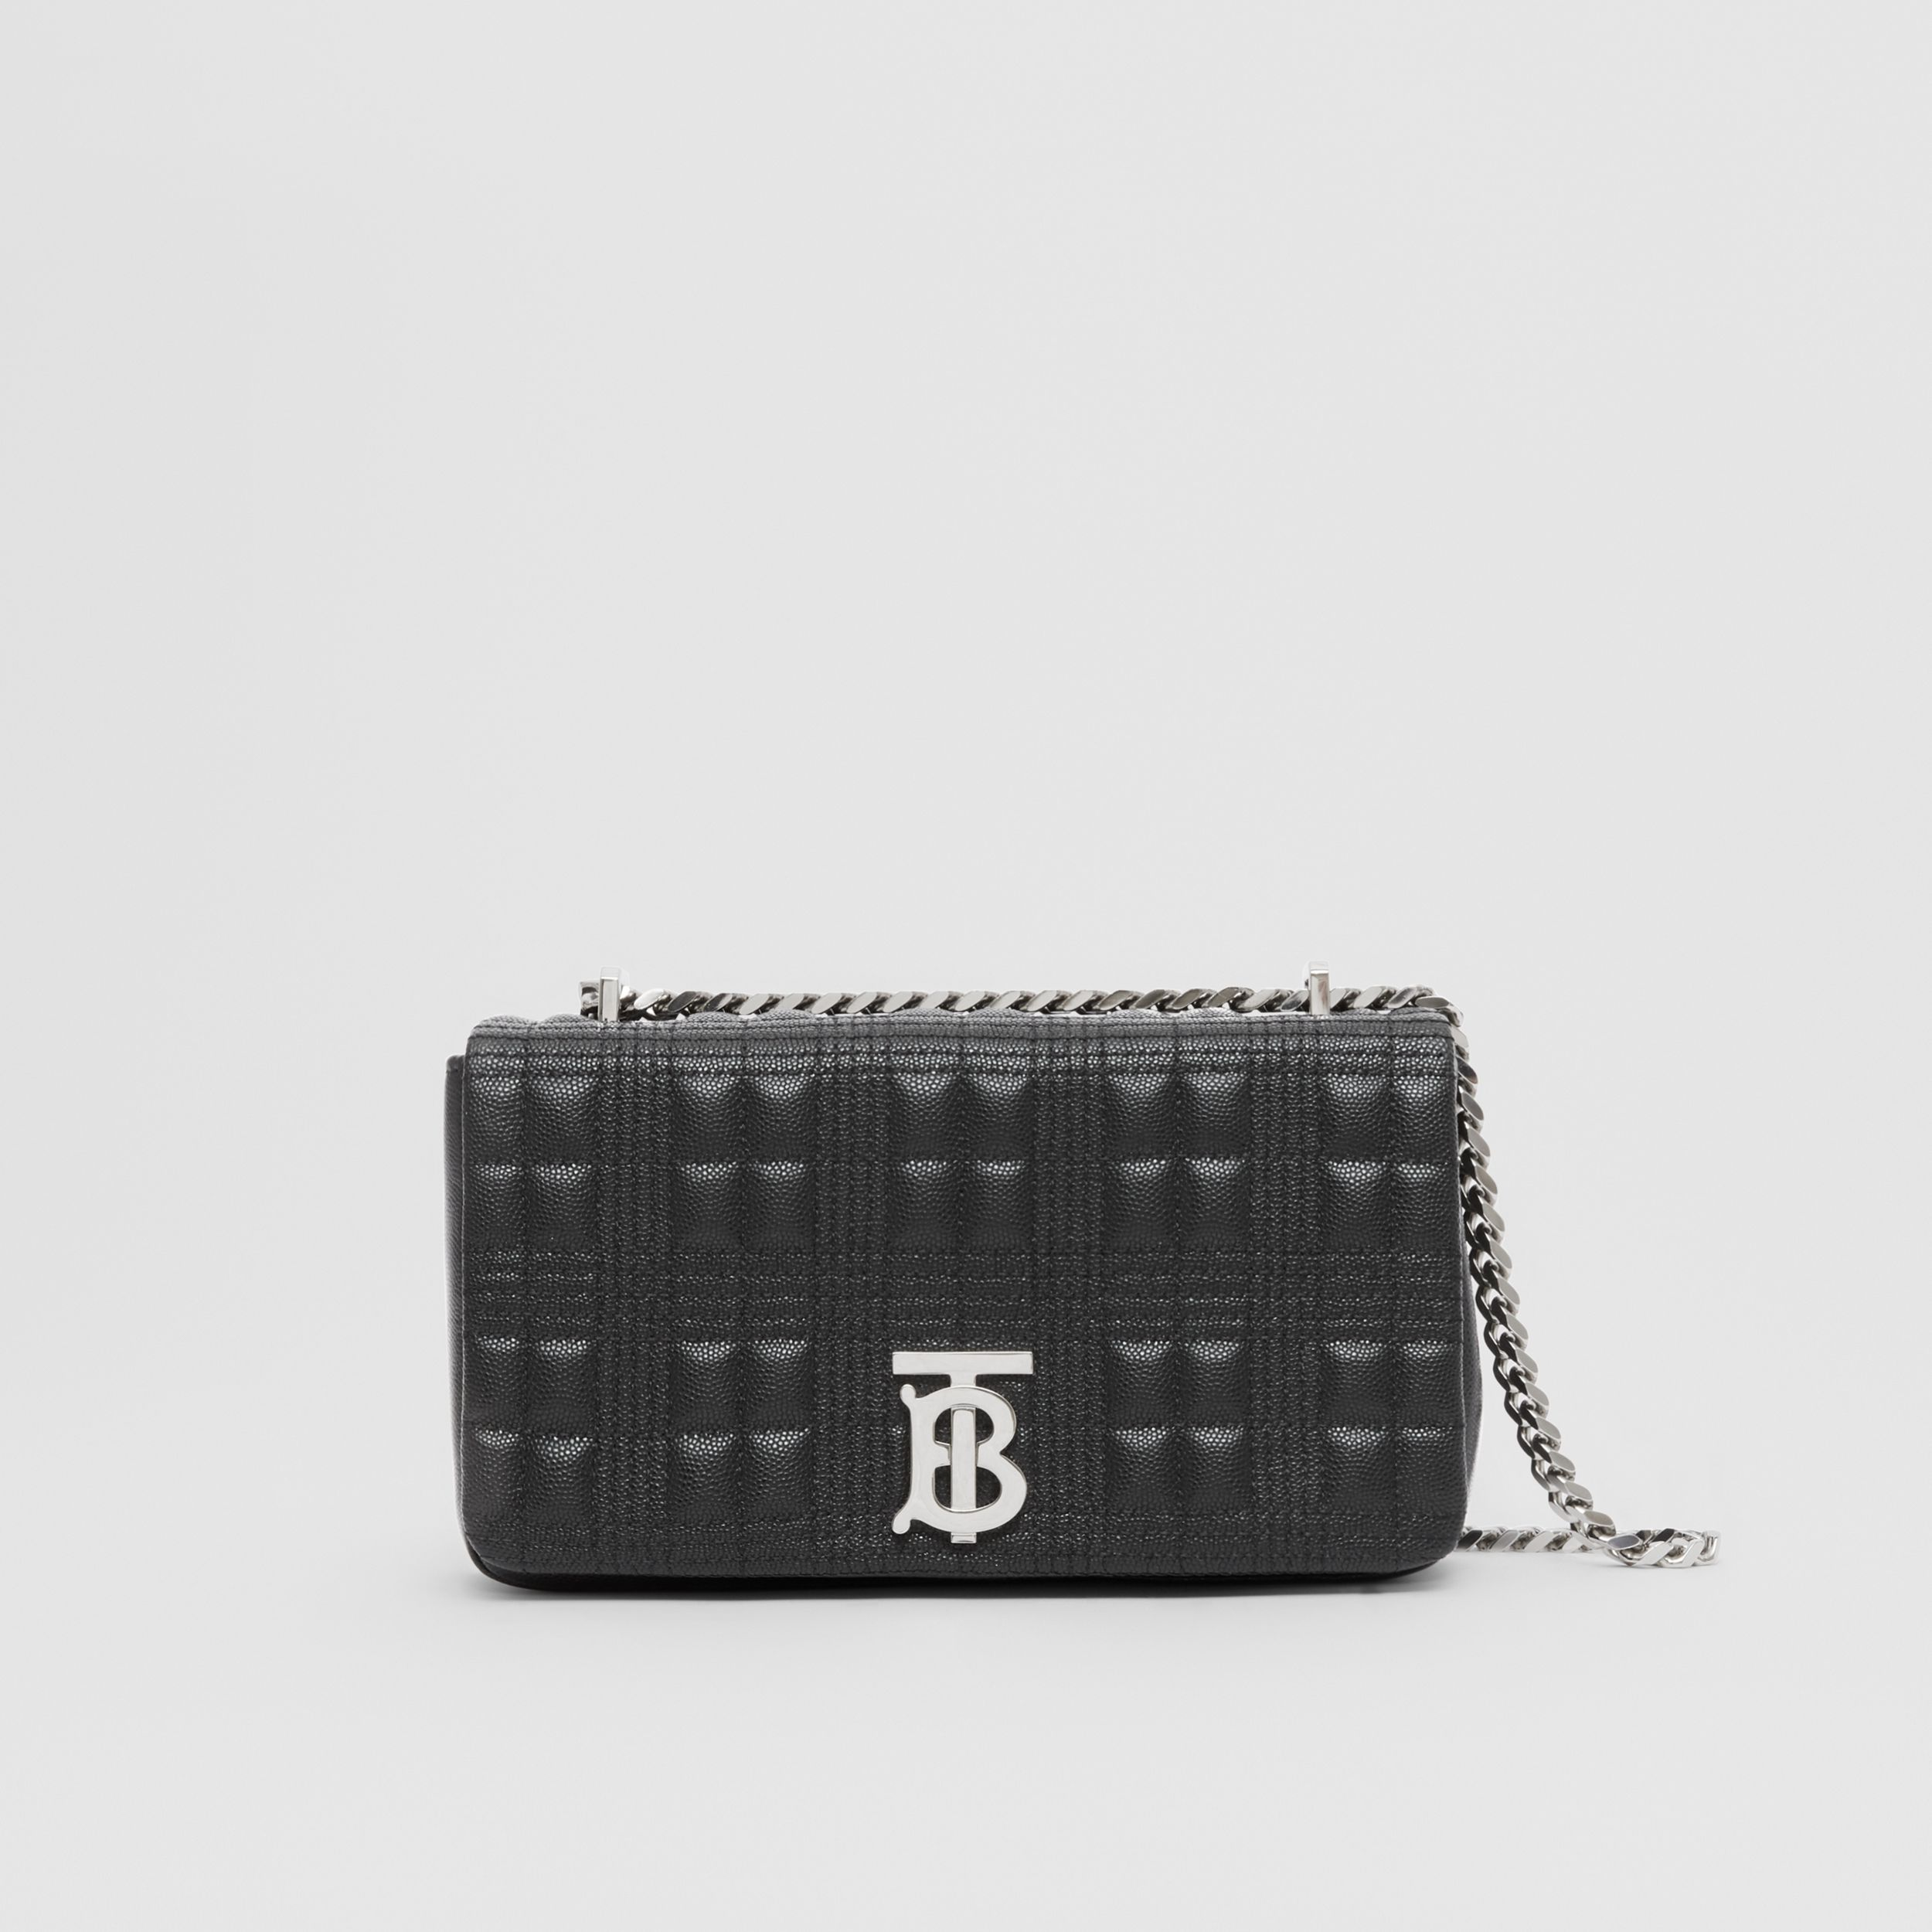 Small Quilted Grainy Leather Lola Bag in Black/palladium | Burberry - 1